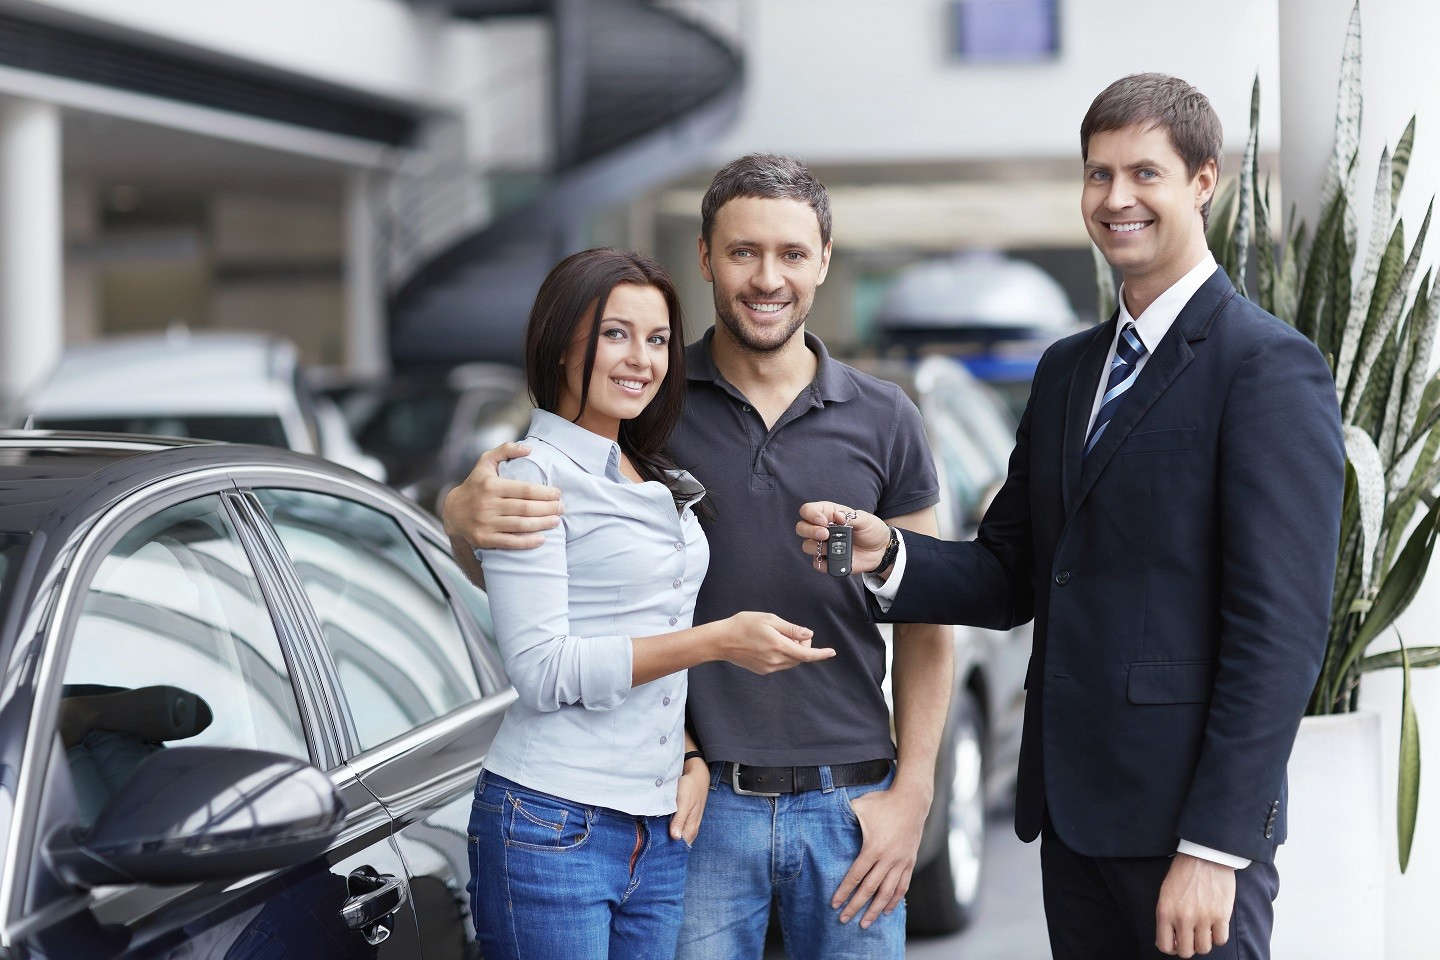 Take Home a Great Used Vehicle!